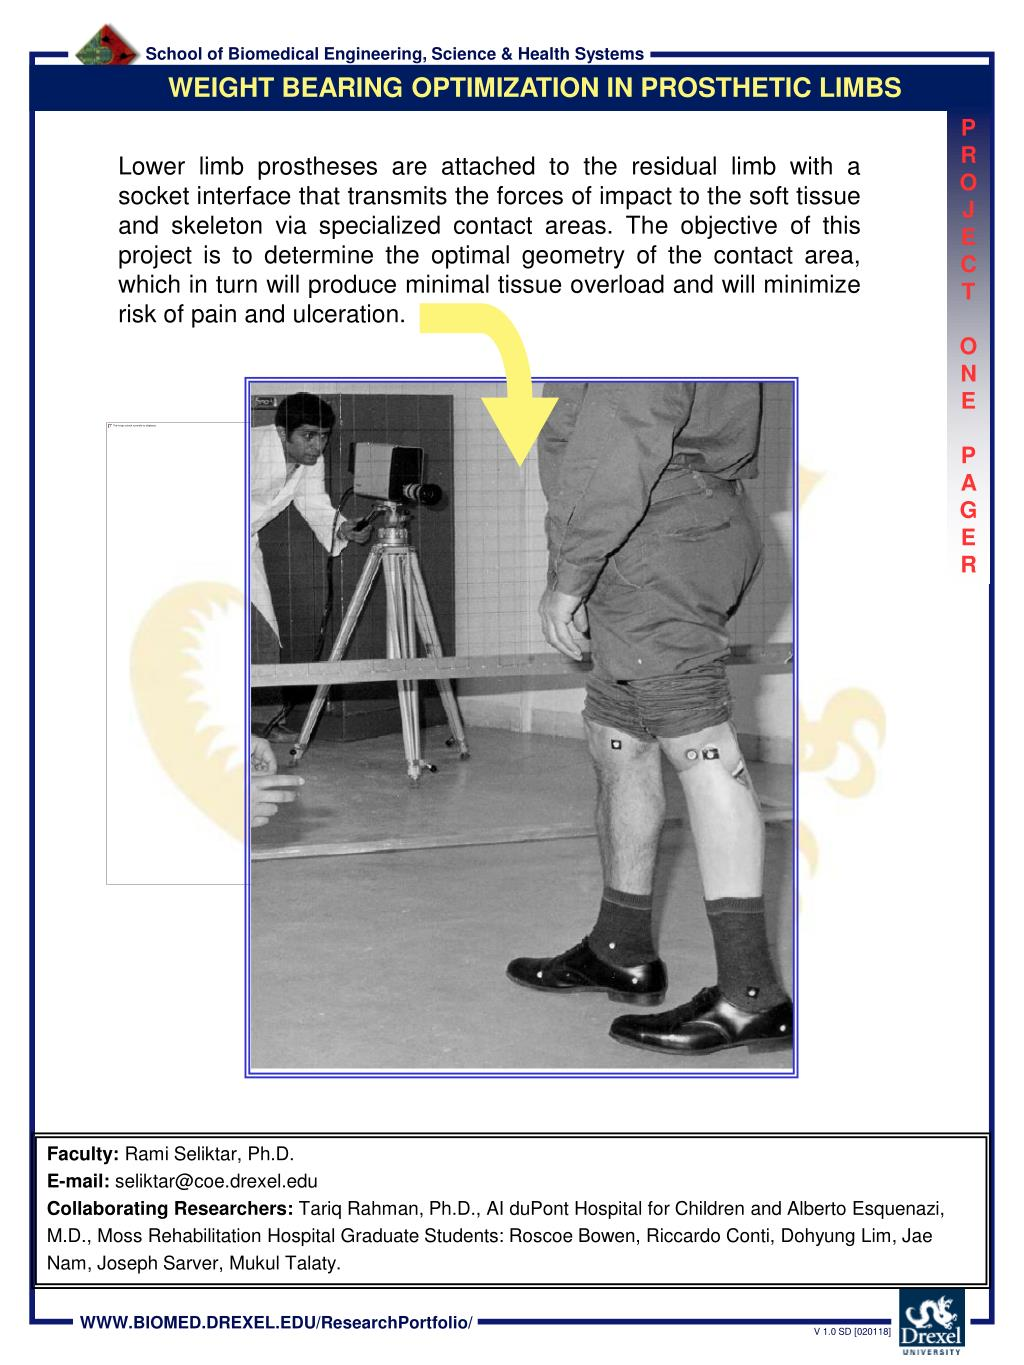 WEIGHT BEARING OPTIMIZATION IN PROSTHETIC LIMBS